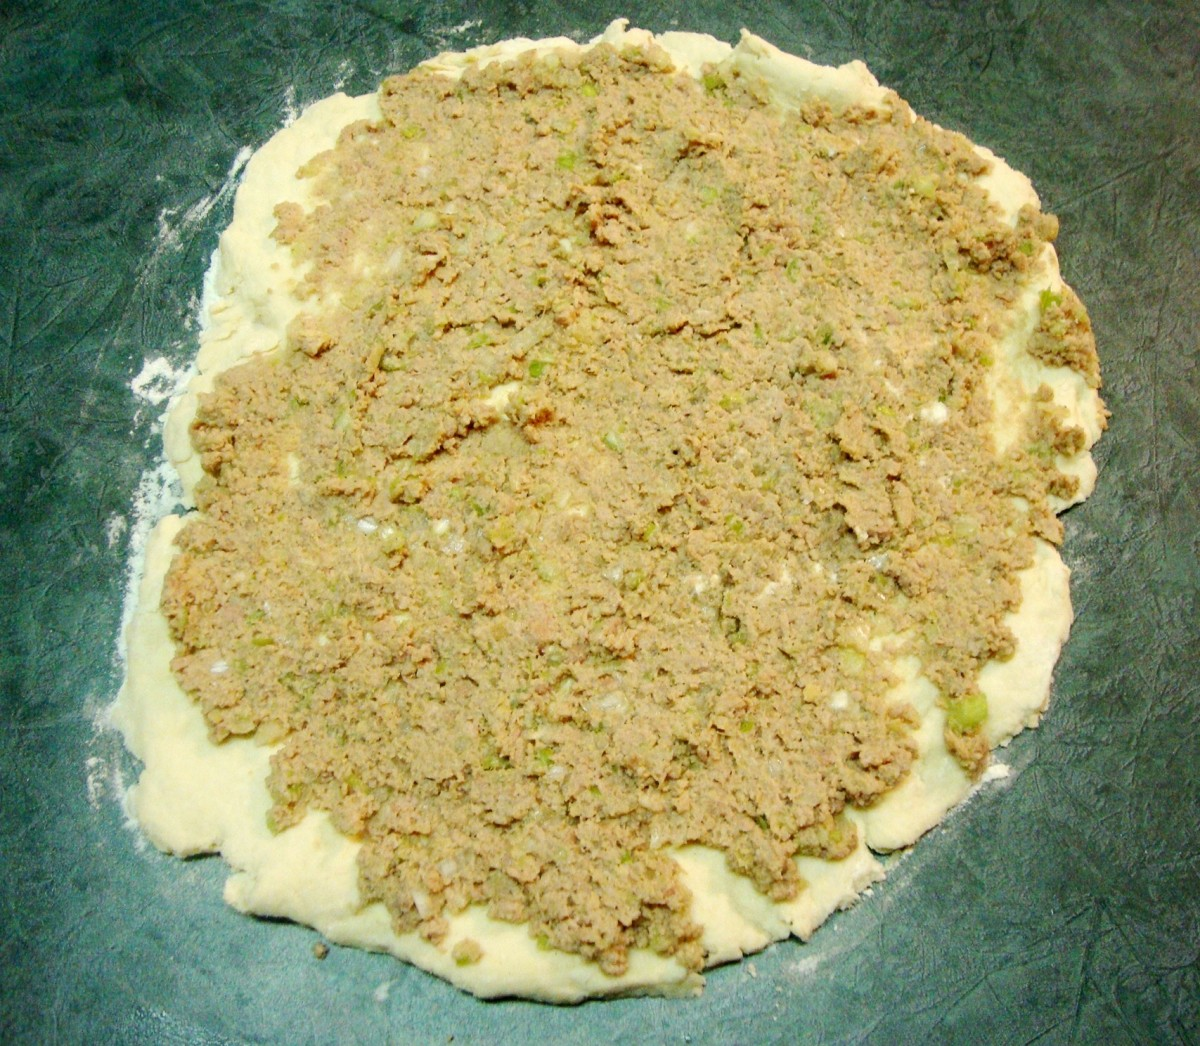 Spreading Turkey Filling Over Biscuit Base